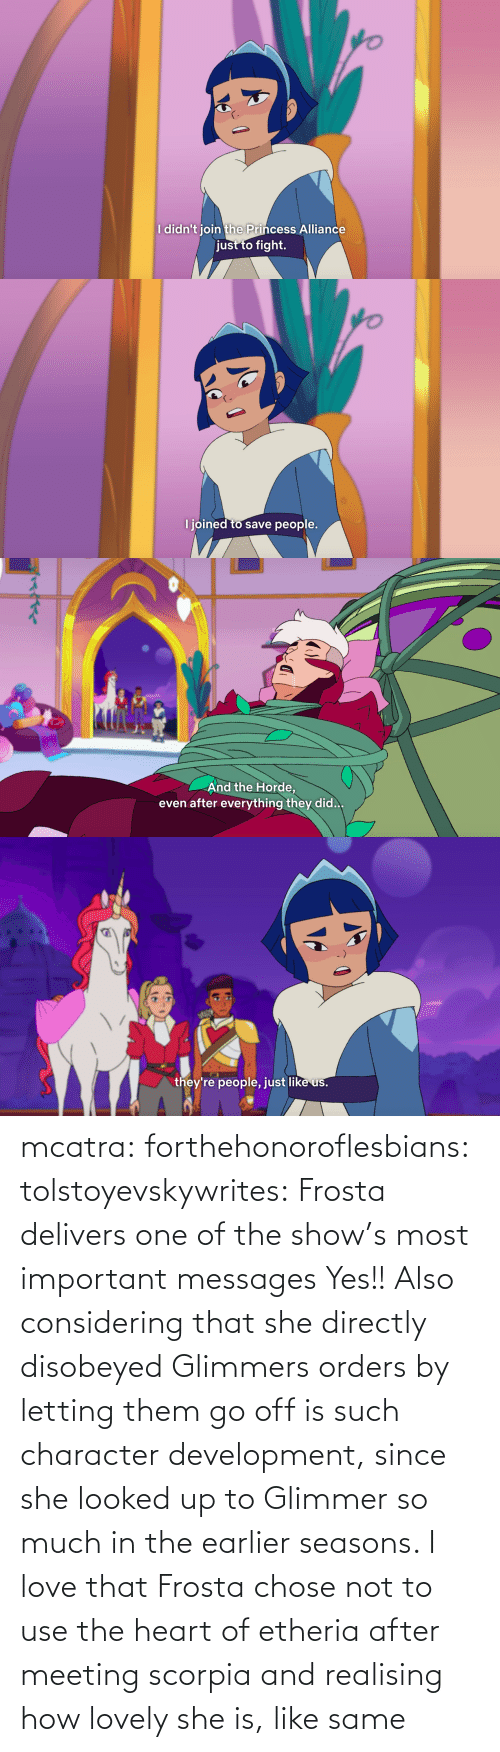 Most Important: mcatra: forthehonoroflesbians:   tolstoyevskywrites:  Frosta delivers one of the show's most important messages  Yes!! Also considering that she directly disobeyed Glimmers orders by letting them go off is such character development, since she looked up to Glimmer so much in the earlier seasons.    I love that Frosta chose not to use the heart of etheria after meeting scorpia and realising how lovely she is, like same